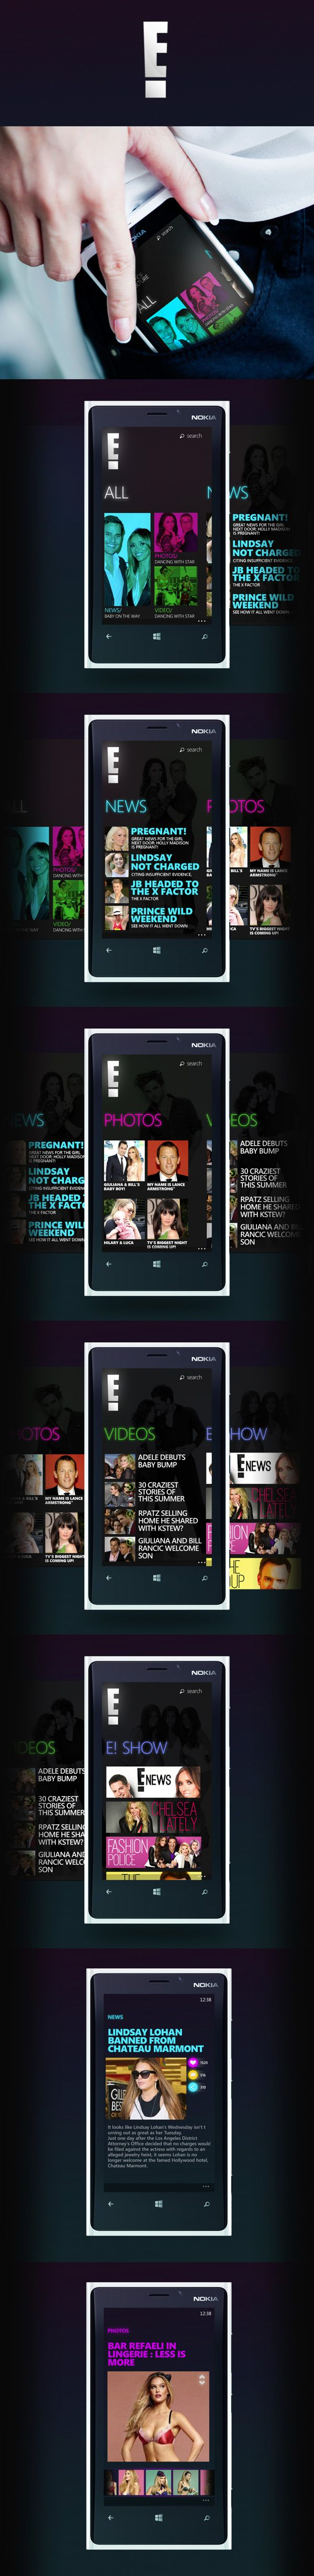 E! Entertainment  - Windows Phone Concept App by Robson Pereira, via Behance